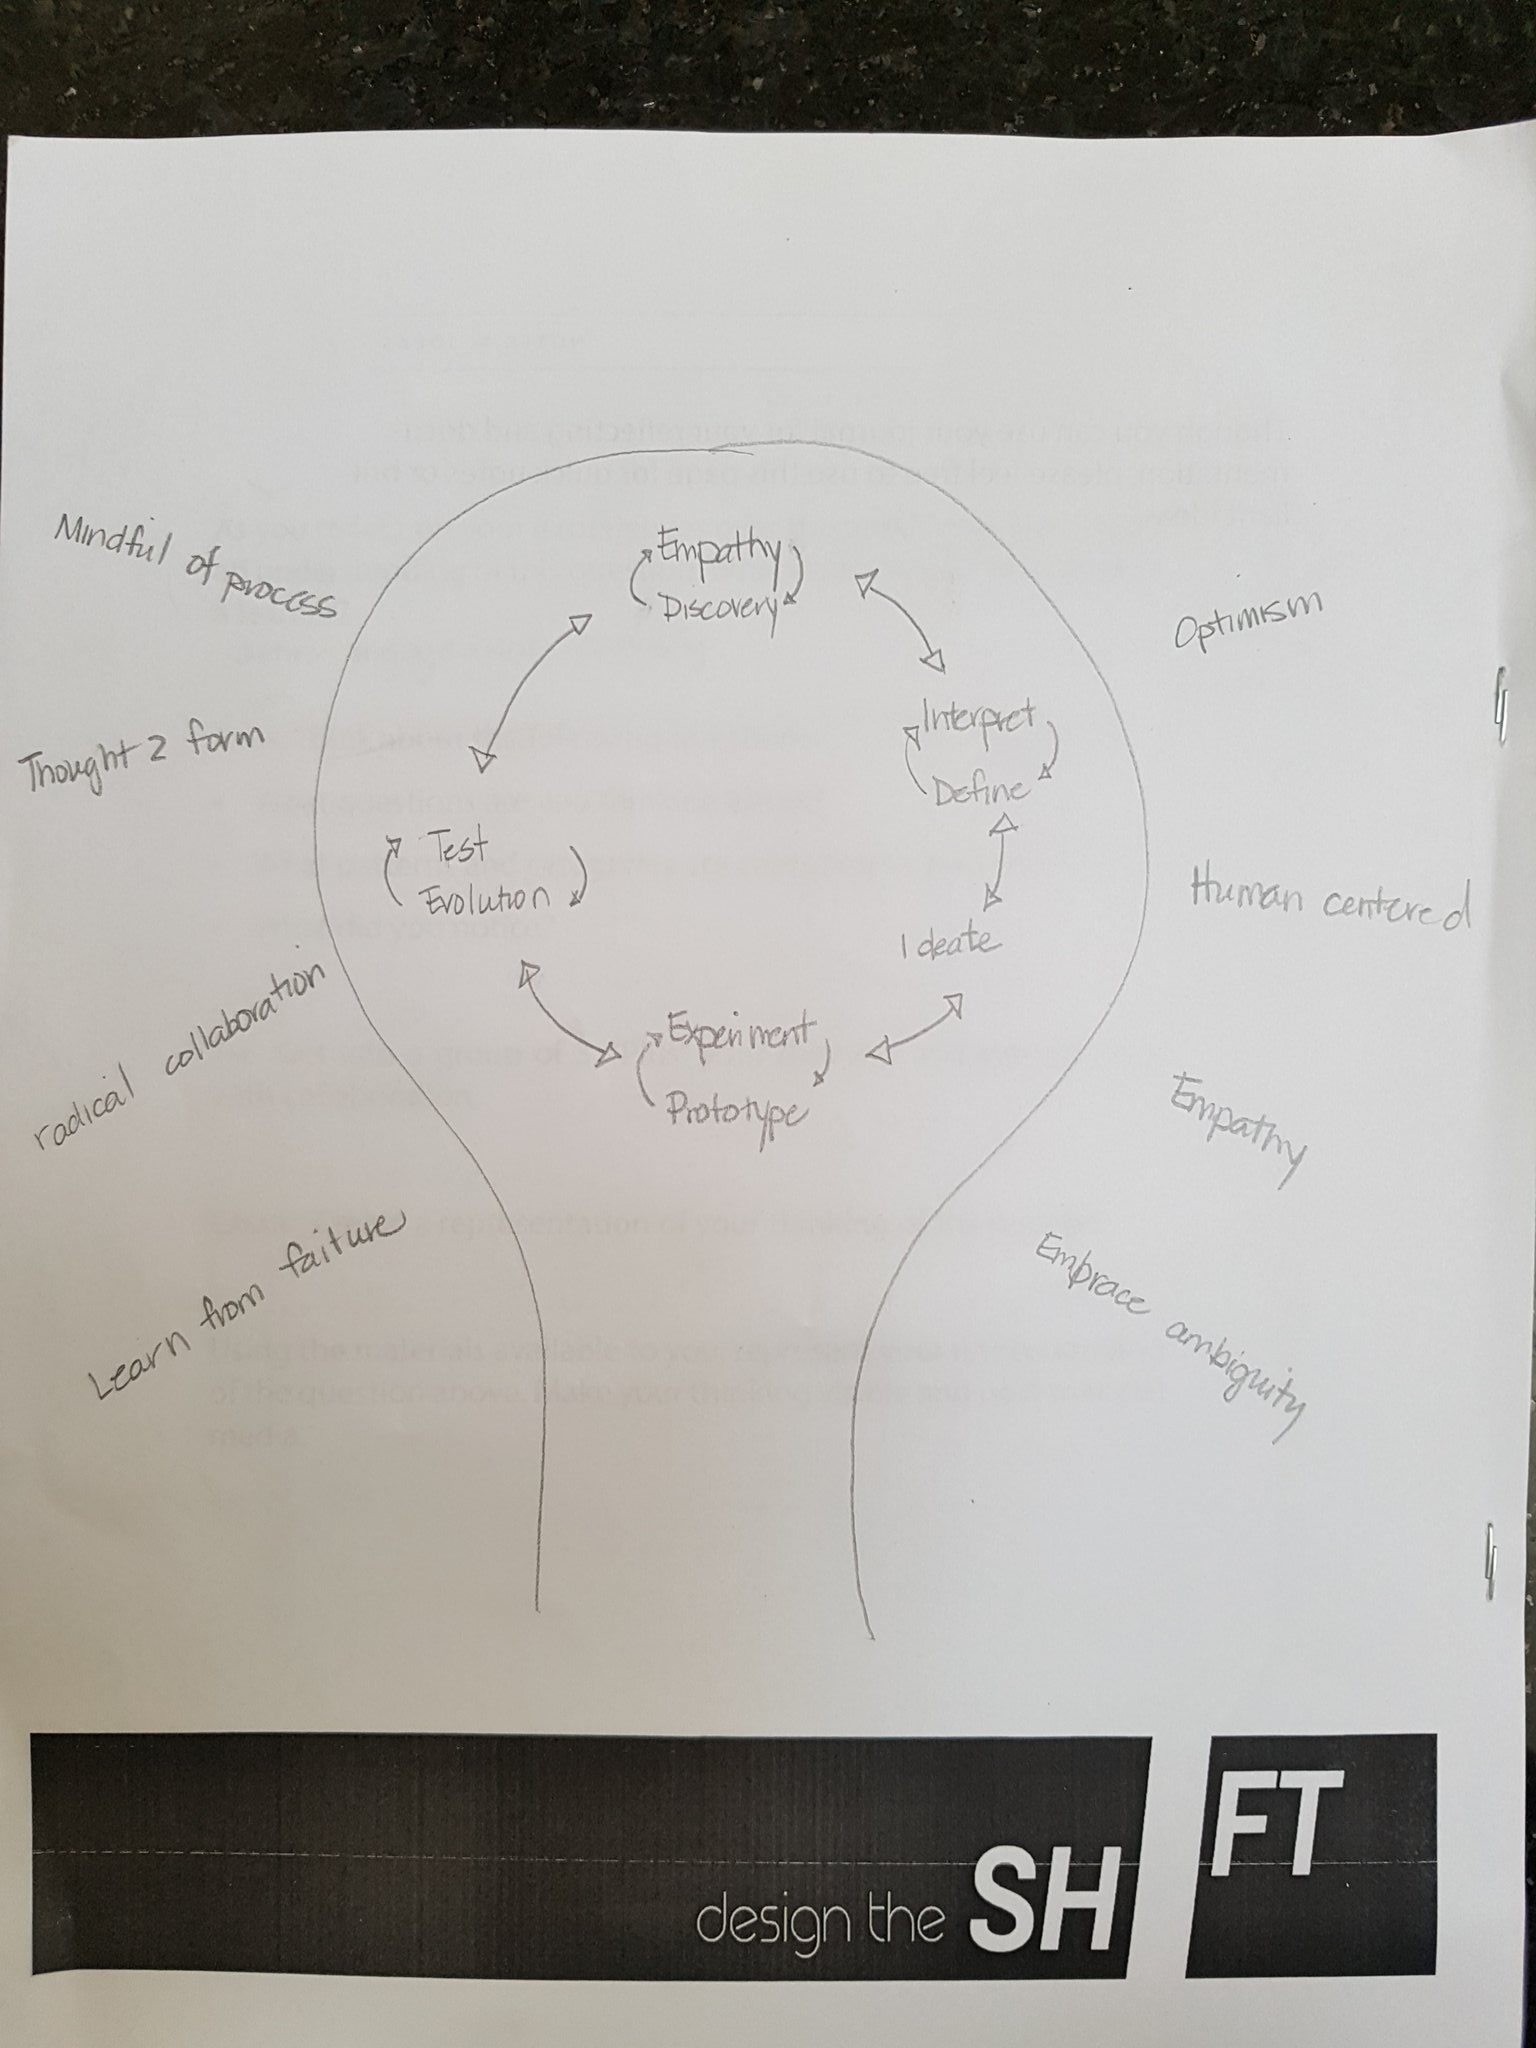 Thought2form another image for design thinking #cbeshift https://t.co/cDGRVdJTkE